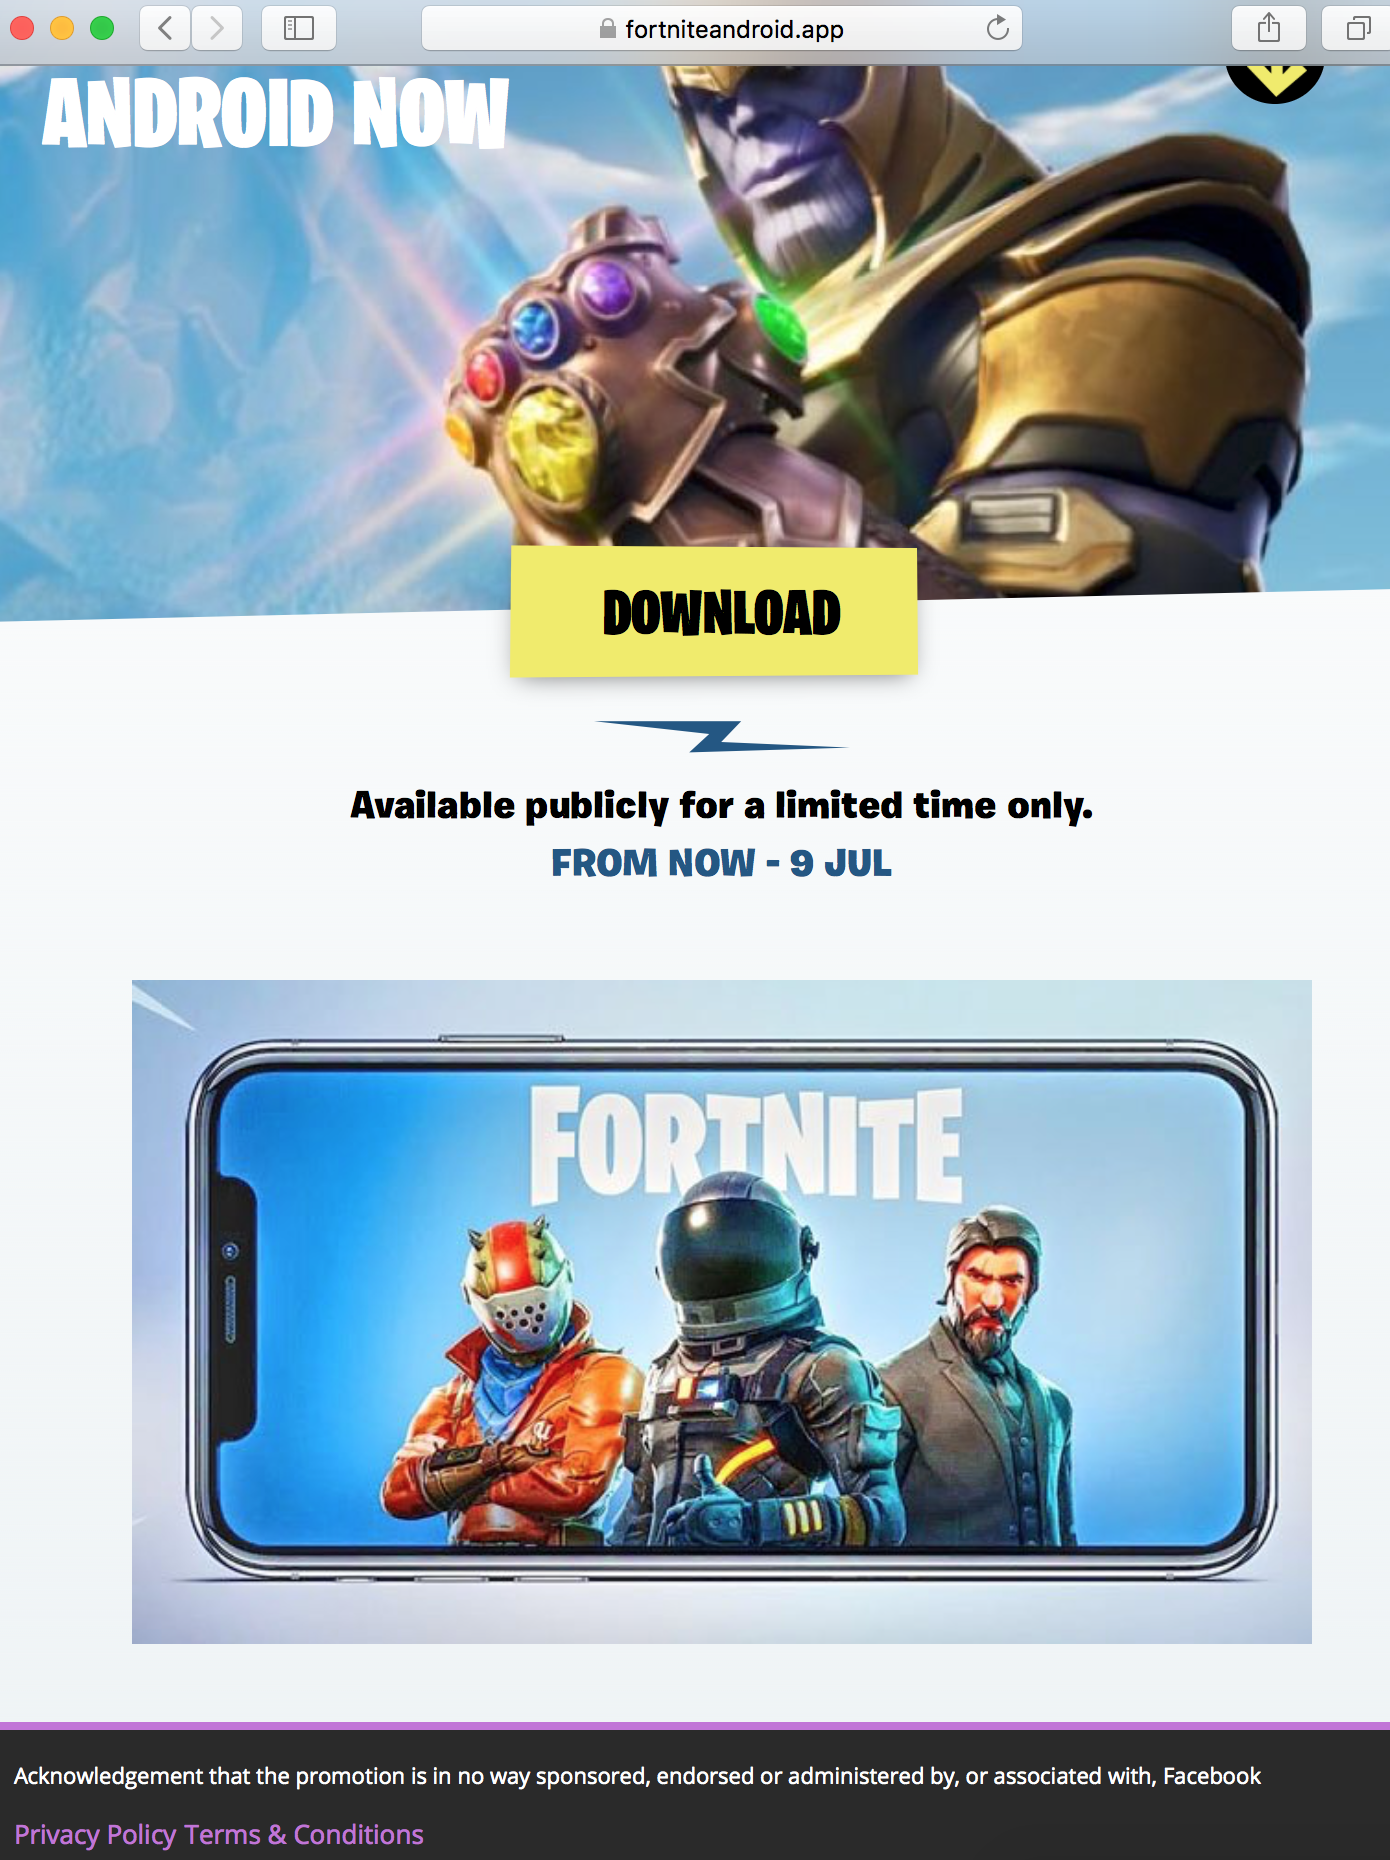 Fortnite for android app release date